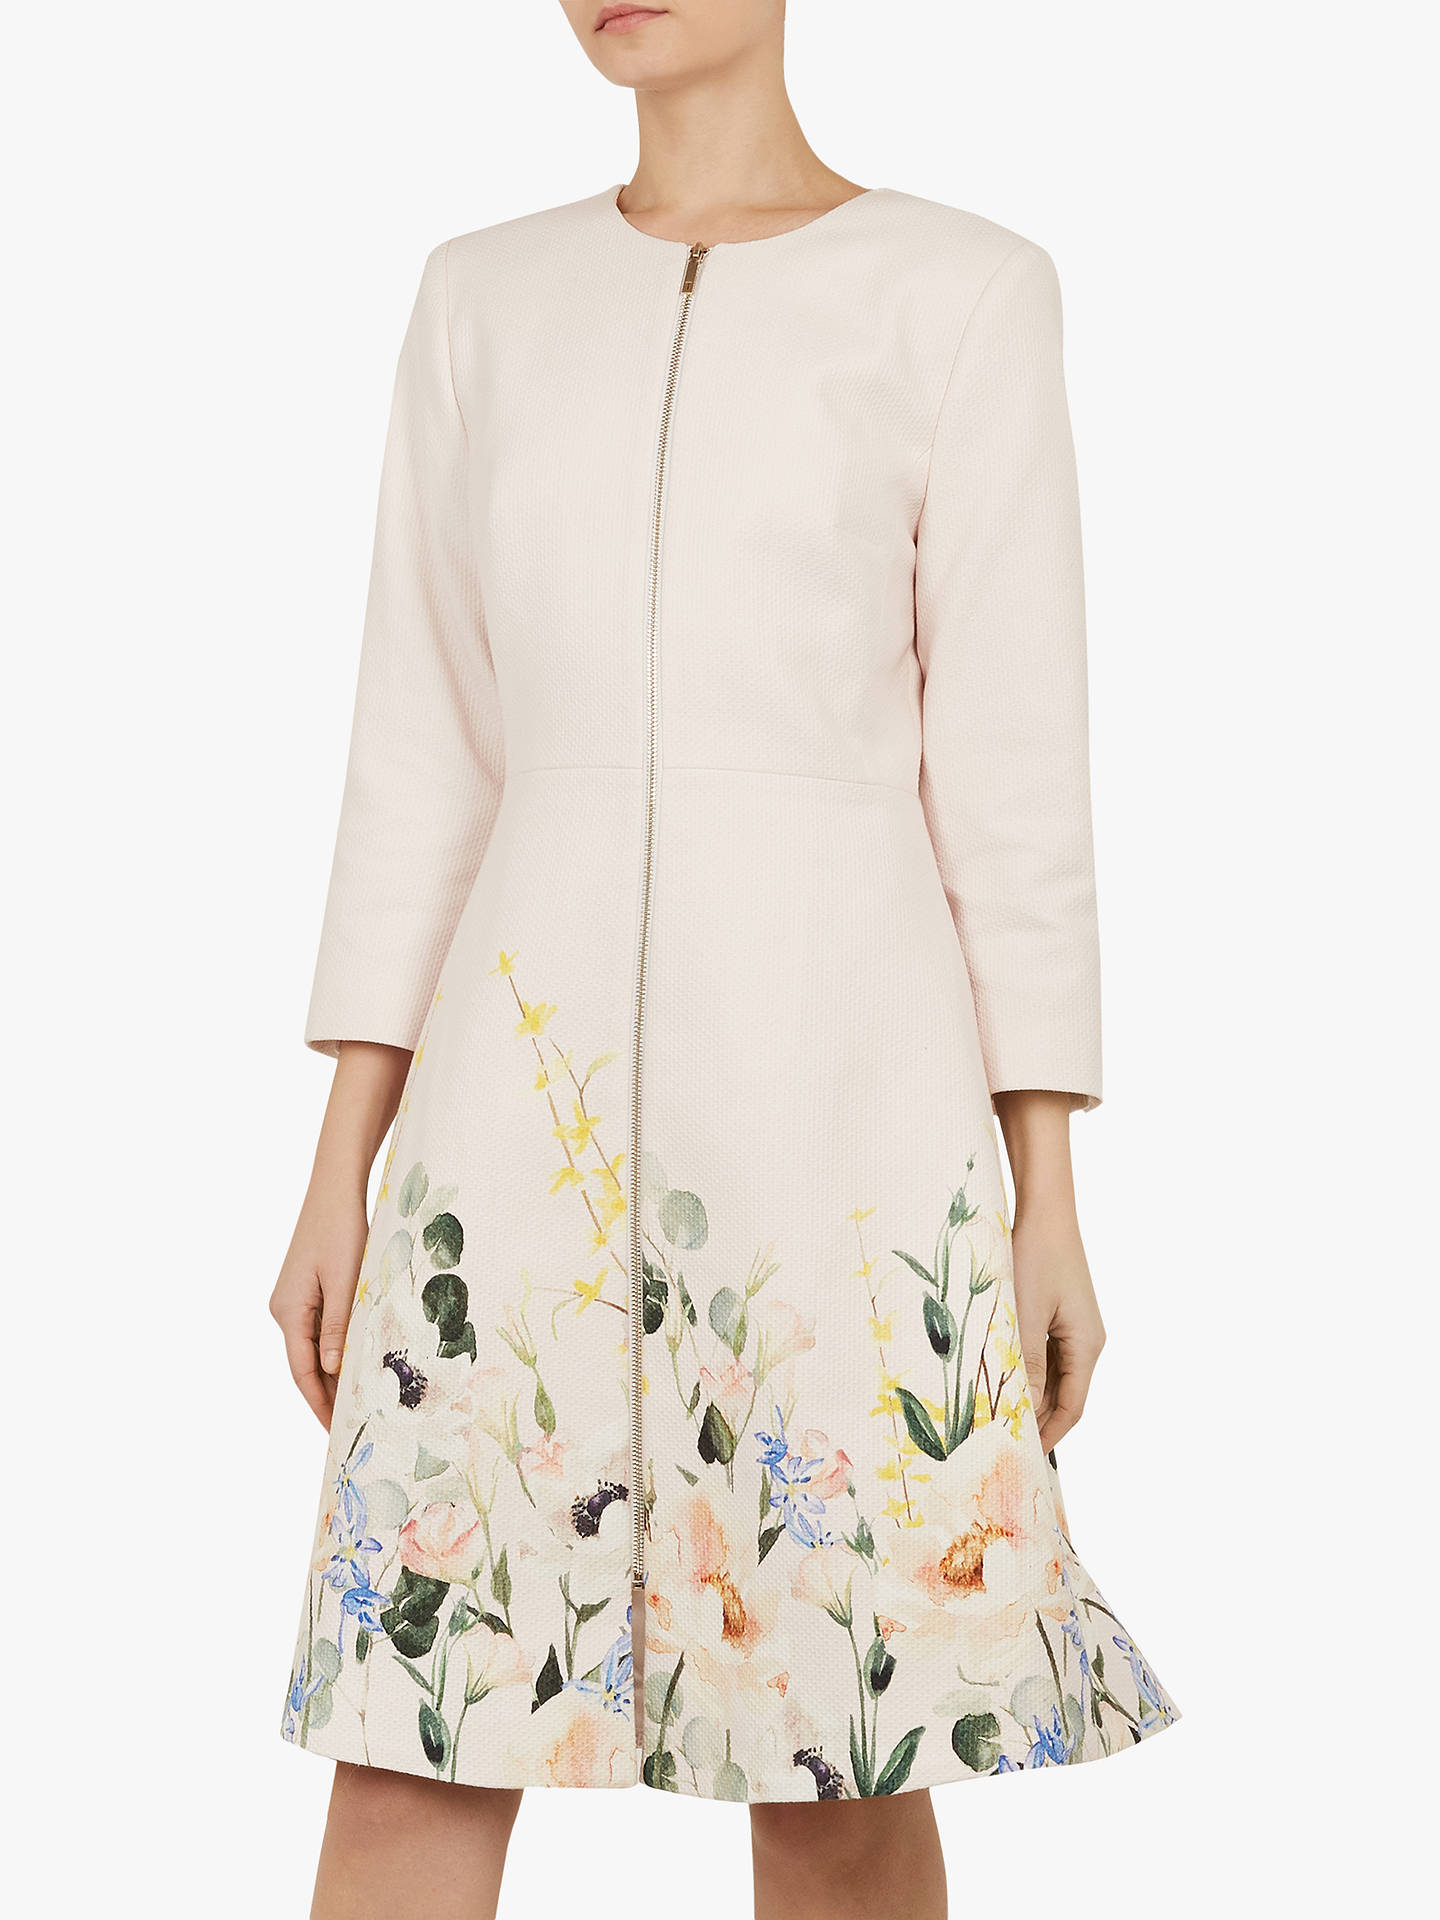 Ted Baker Luluuu Textured Dress Coat, Pink Nude by Ted Baker